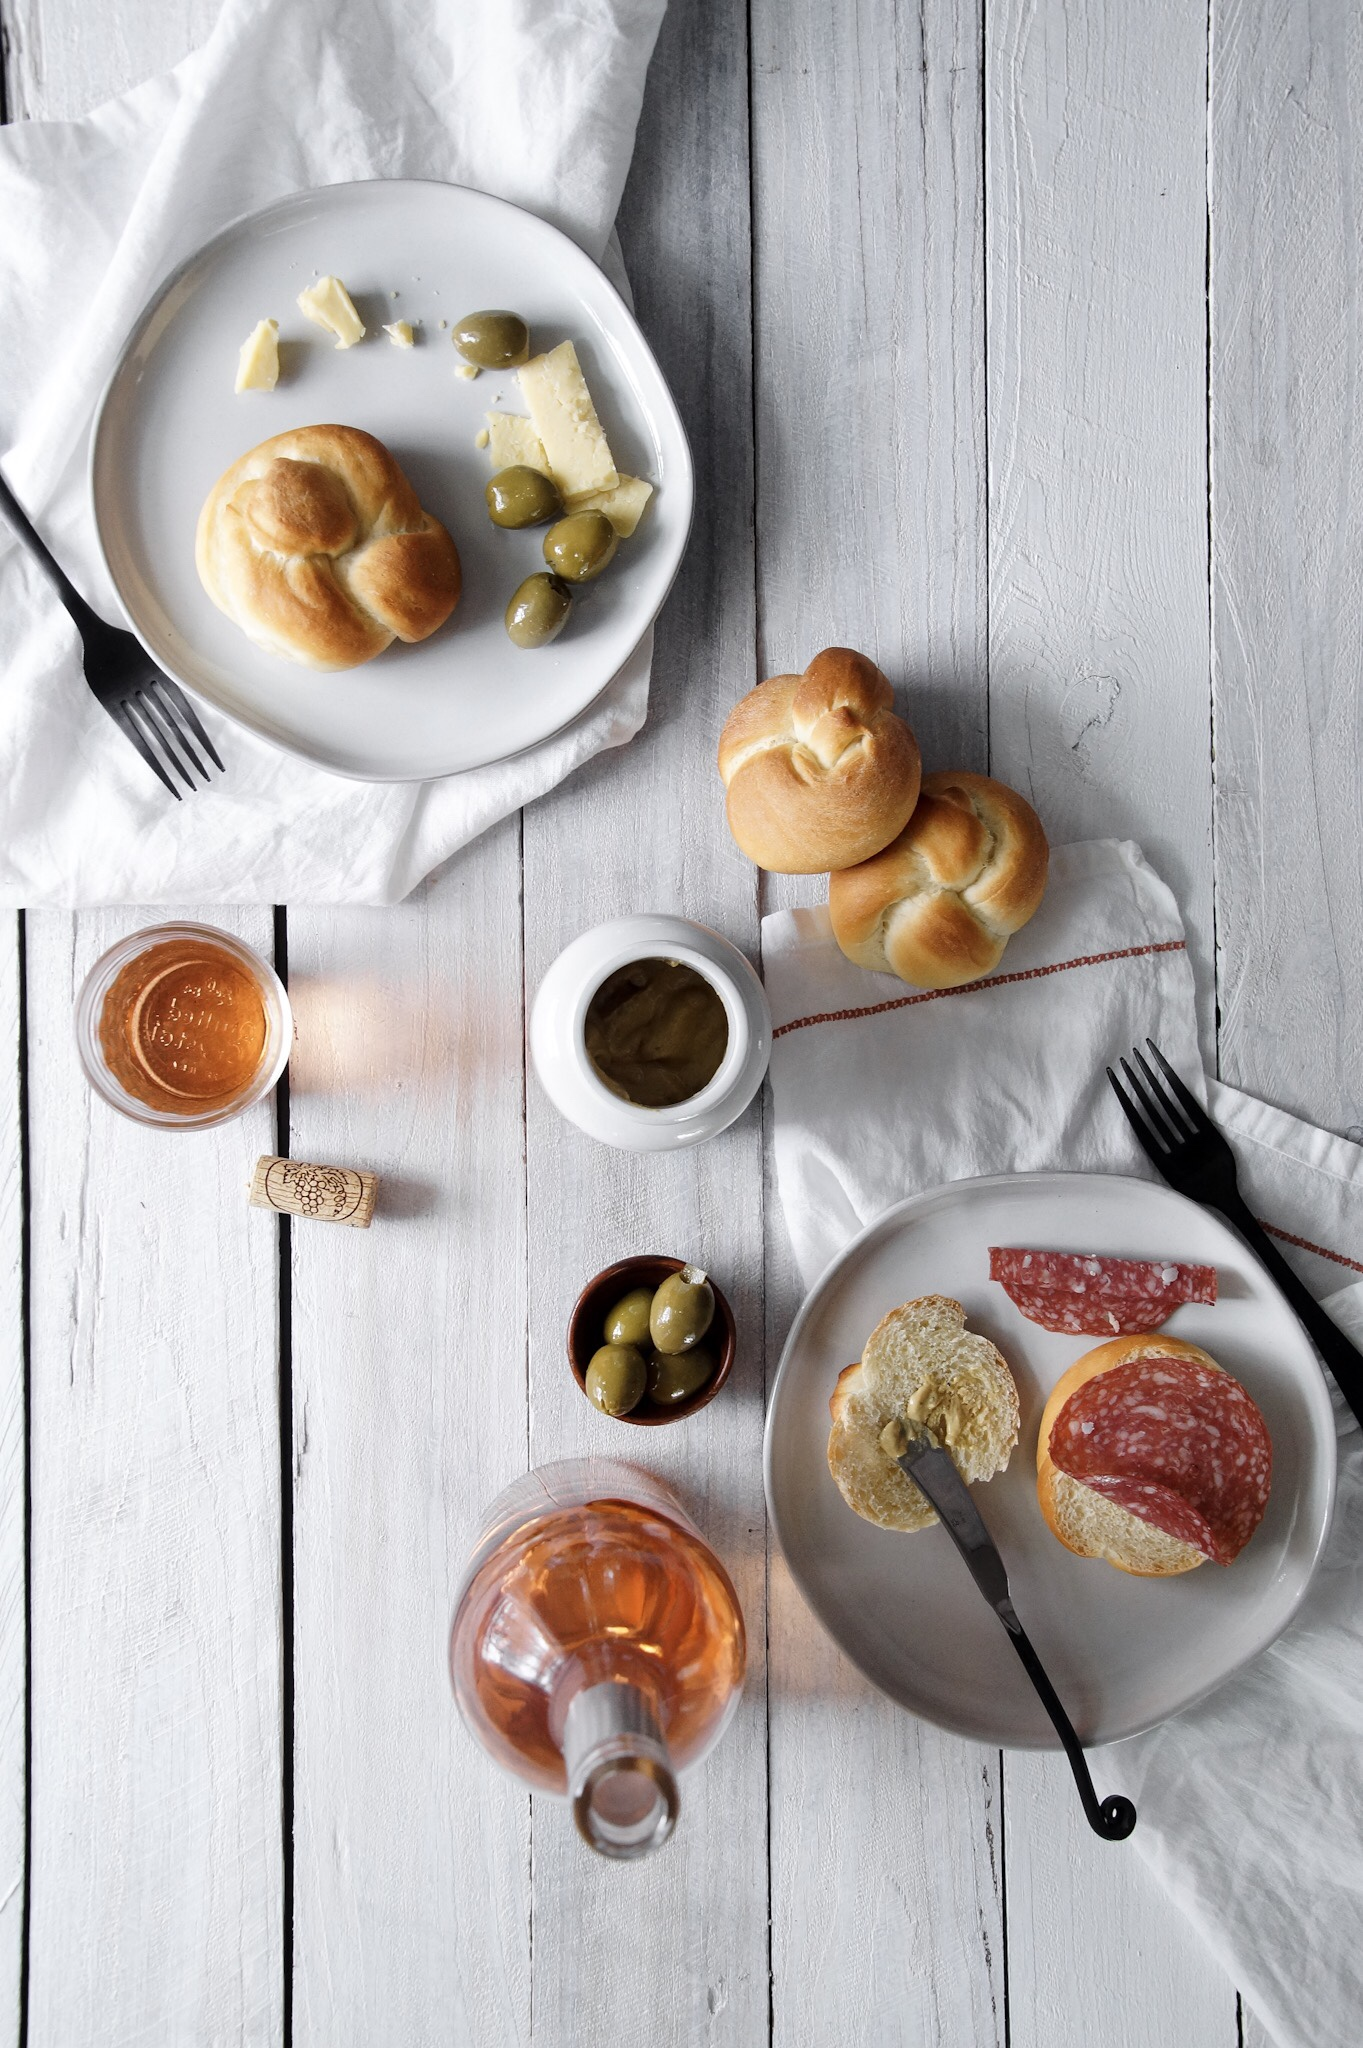 pair this recipe for milk buns with simple cheese and pickles or olives for a perfect no fuss lunch with results that are way beyond ordinary.